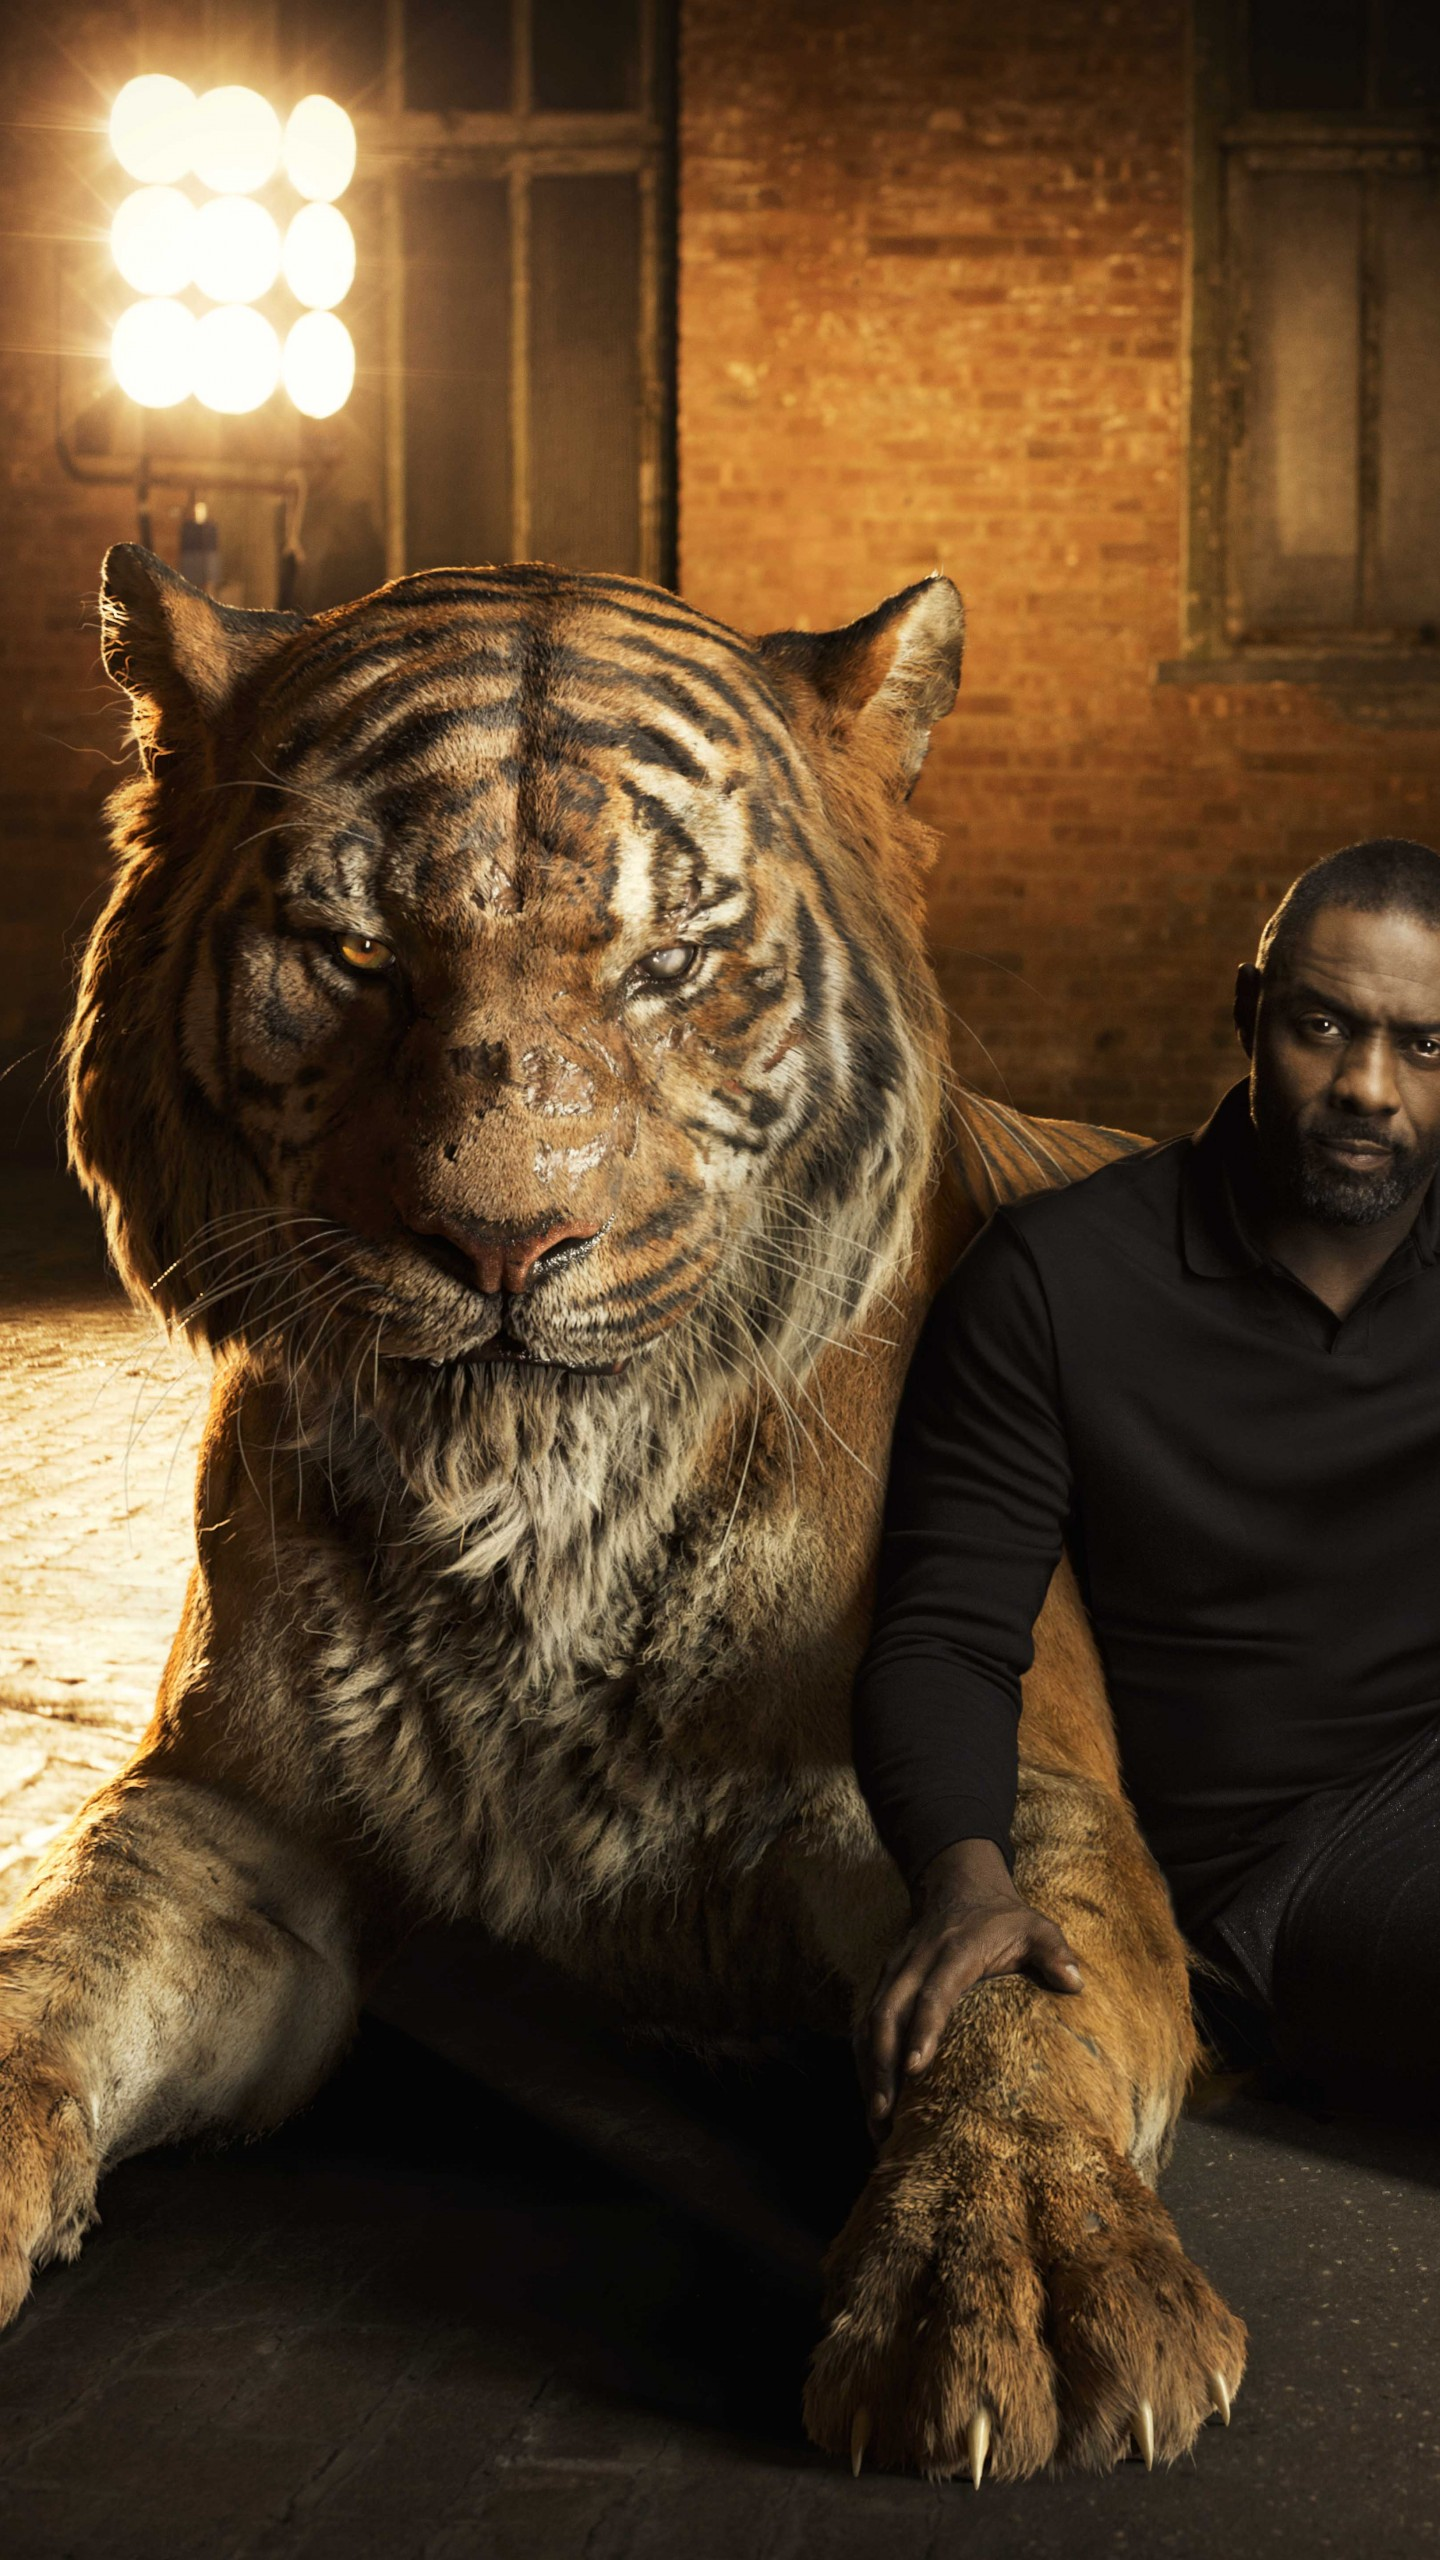 Girls 4k Wallpaper Wallpaper The Jungle Book Idris Elba Shere Khan